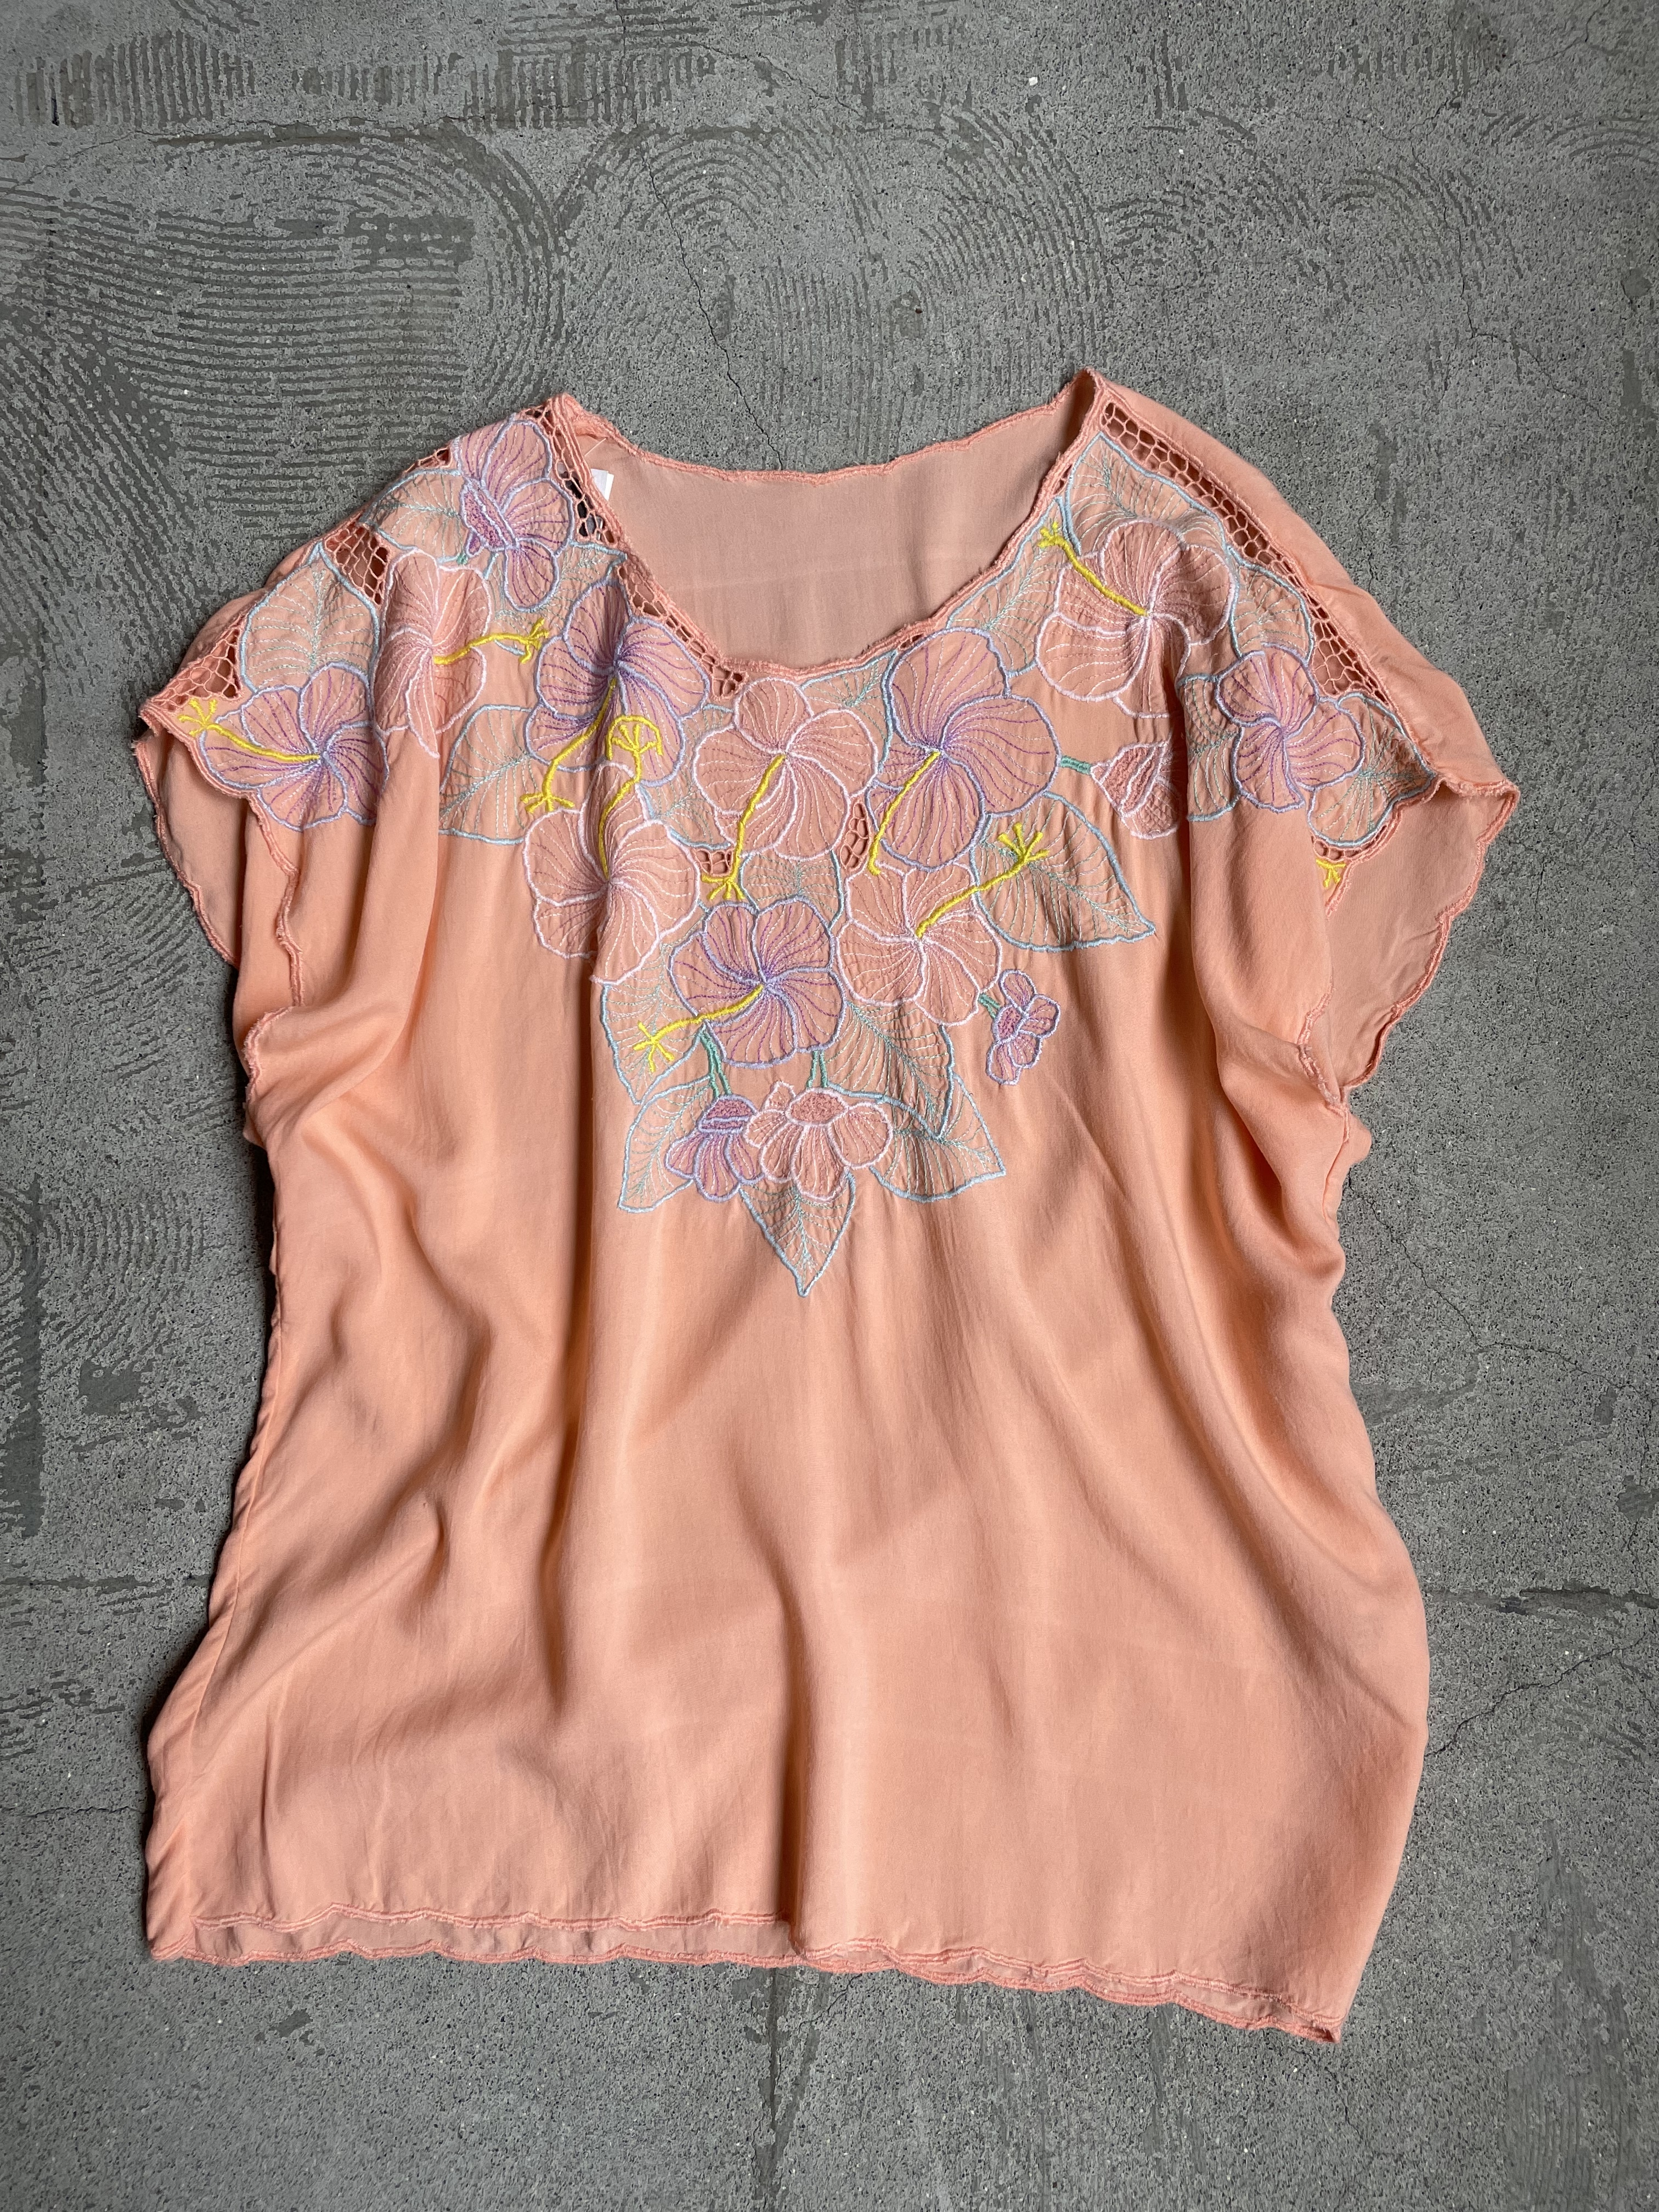 vintage floral embroidery rayon blouse